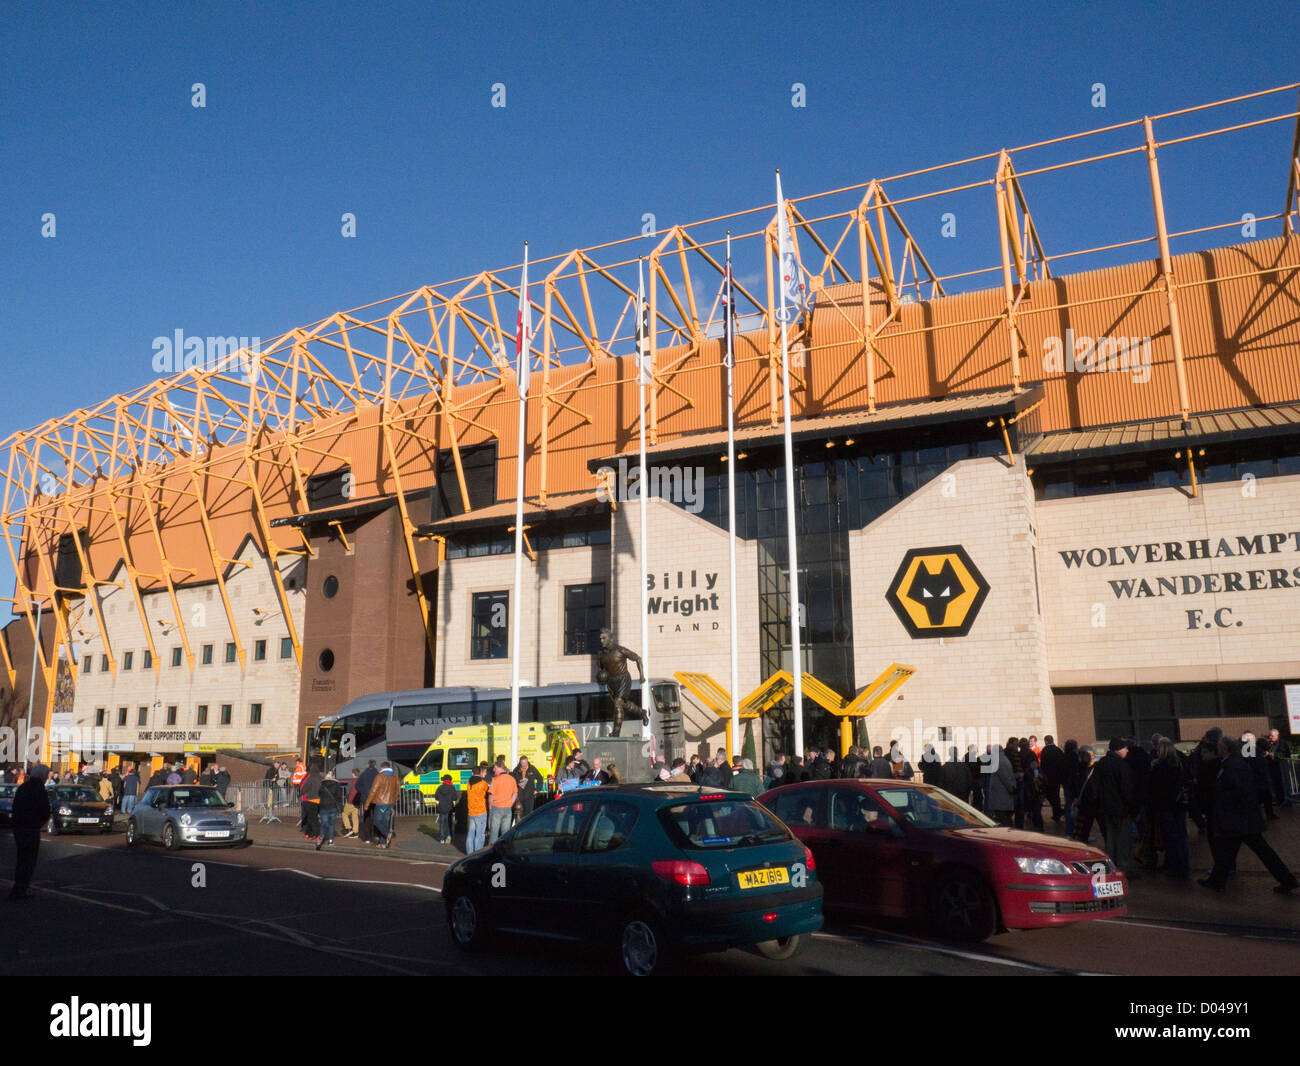 Wolverhampton West Midlands Molineux Stadium ground of Wolverhampton Wanderers Football Club on home match day - Stock Image